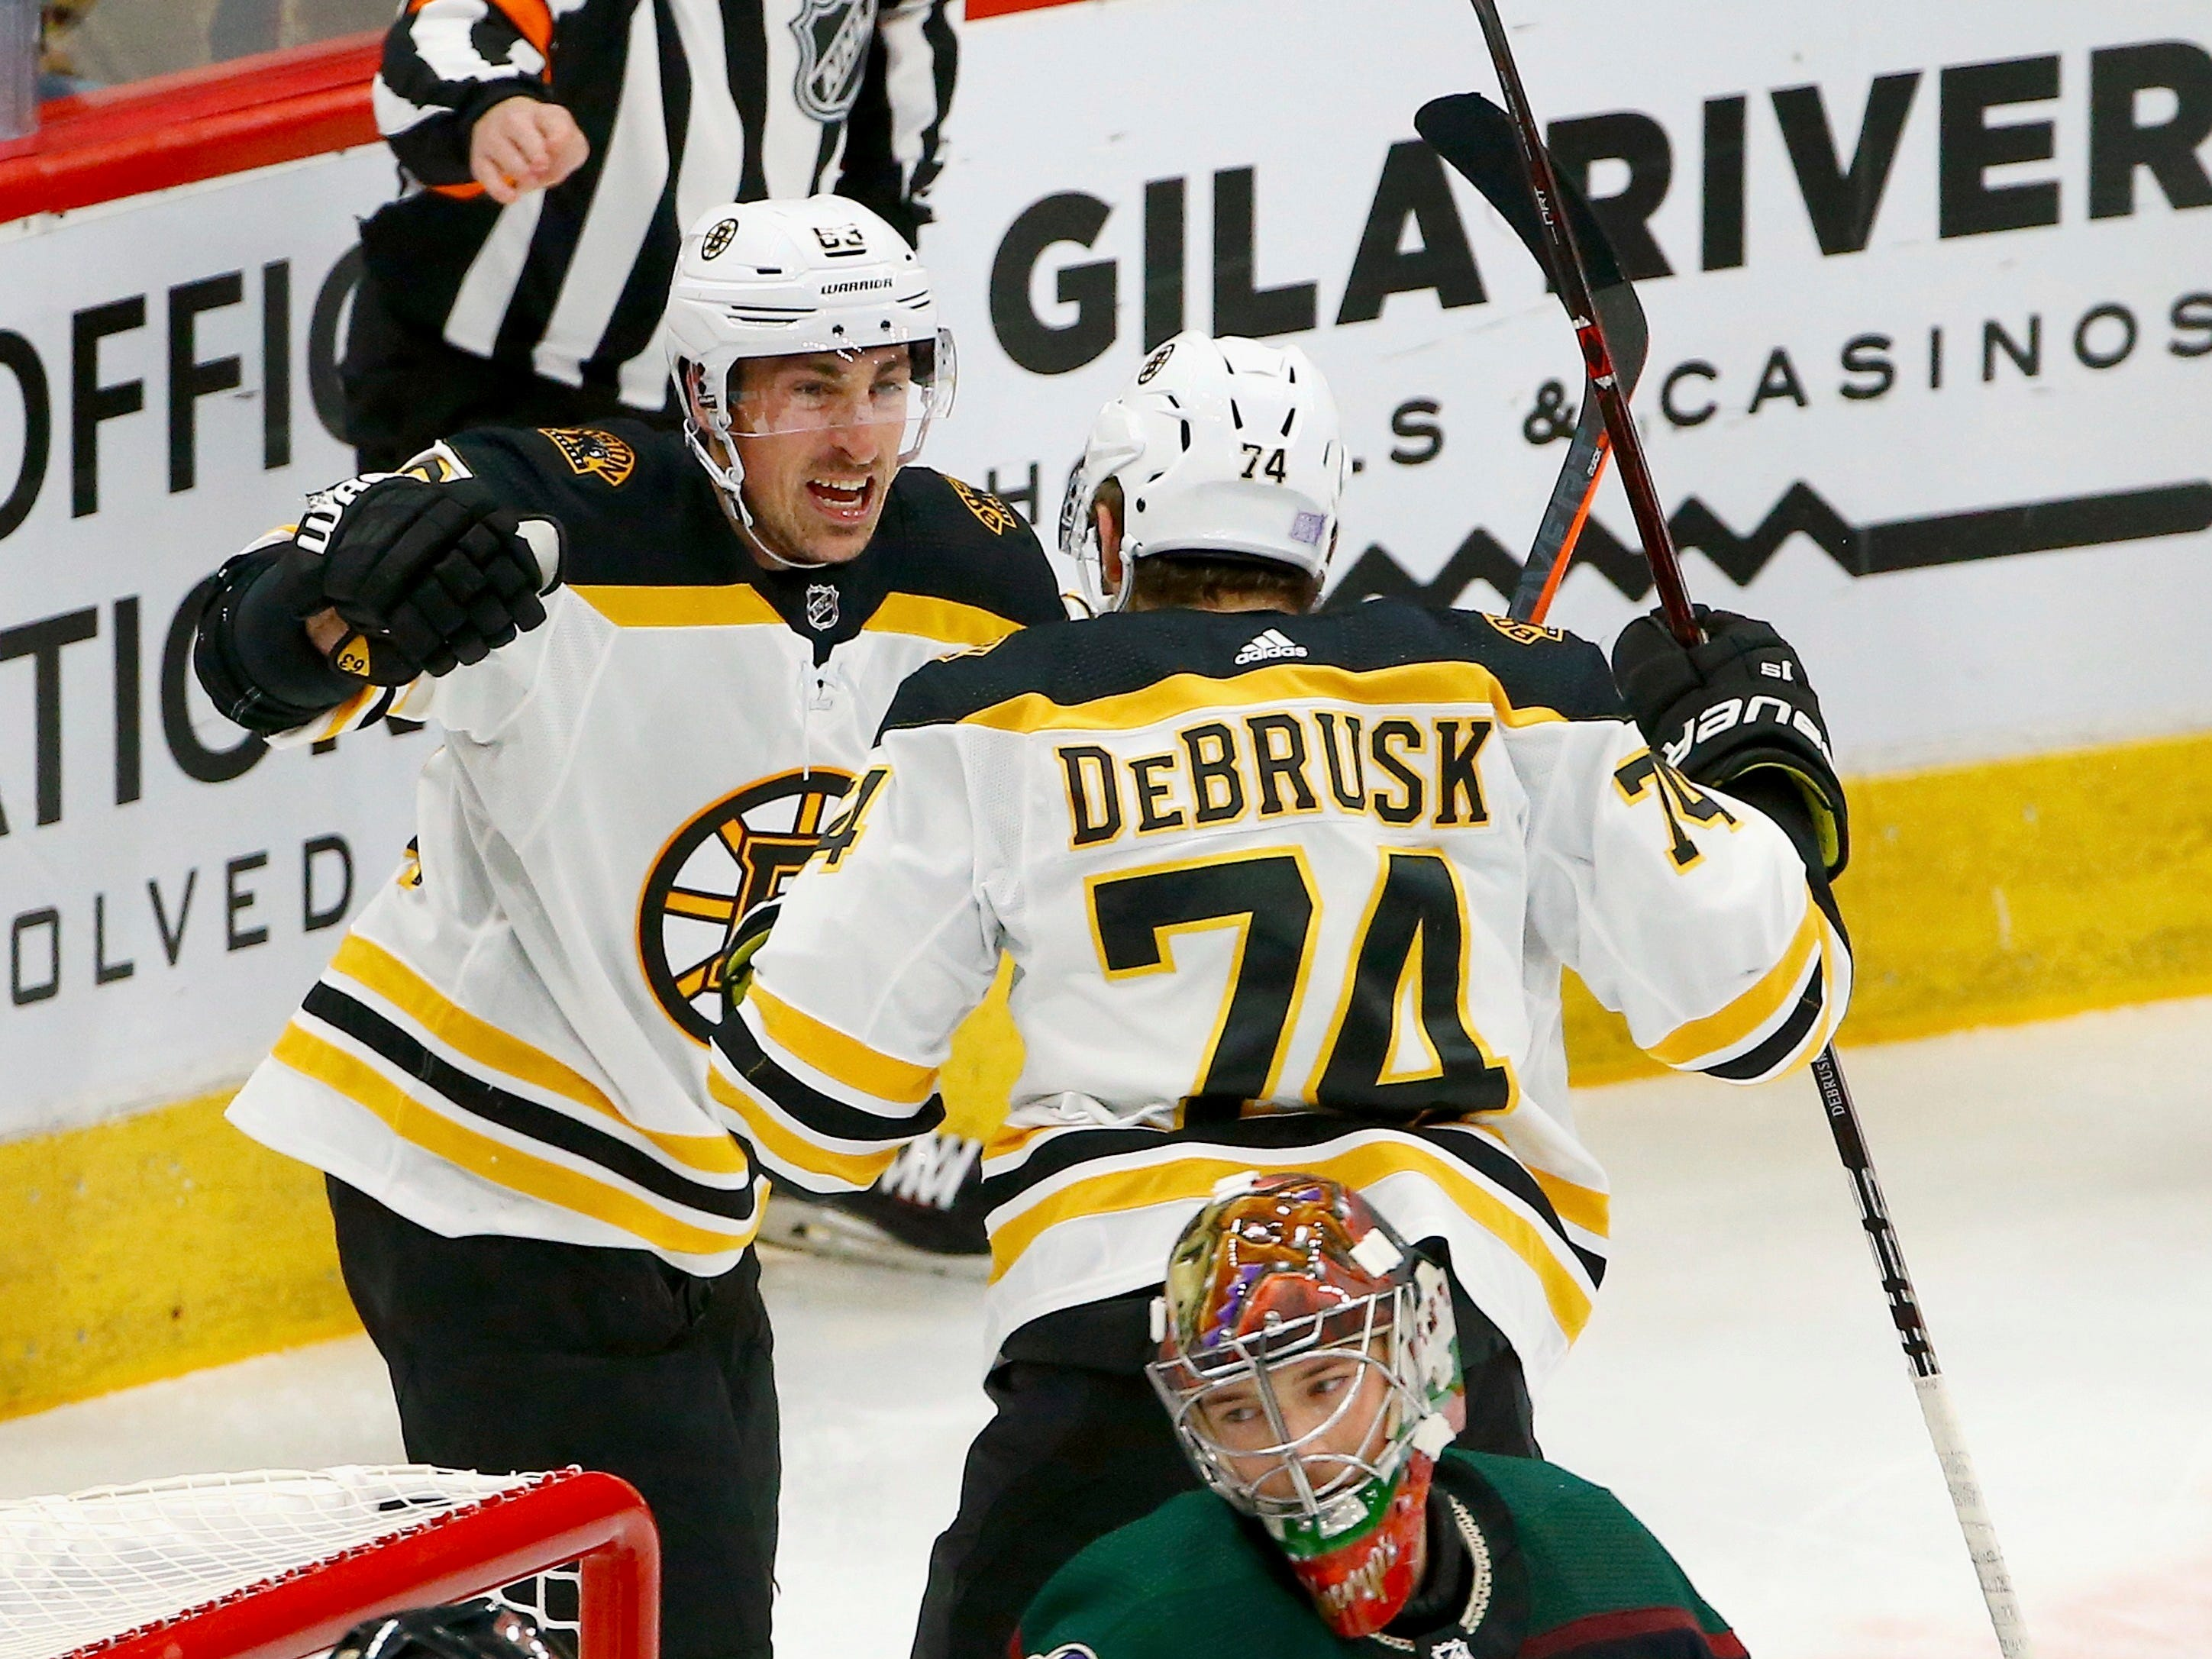 Boston Bruins left wing Jake DeBrusk (74) celebrates his goal against Arizona Coyotes goaltender Darcy Kuemper (35) with Bruins left wing Brad Marchand, top left, as Coyotes right wing Michael Grabner, left, pauses near the goal during the first period of an NHL hockey game Saturday, Nov. 17, 2018, in Glendale, Ariz. (AP Photo/Ross D. Franklin)